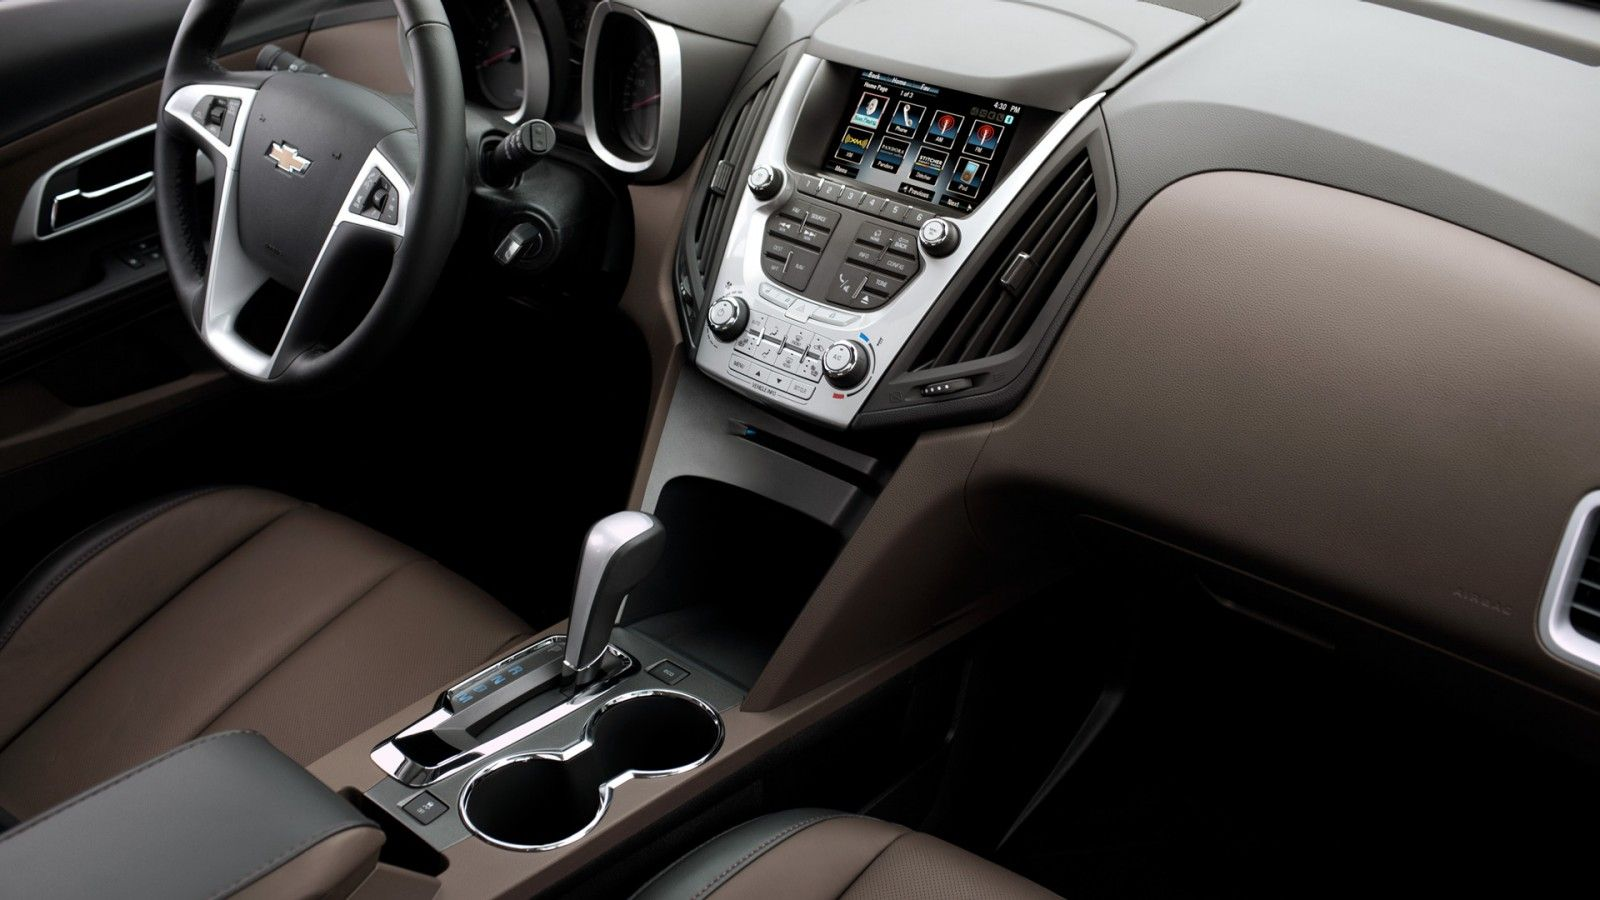 Chevrolet Equinox 2LT interior in Jet Black/Brownstone